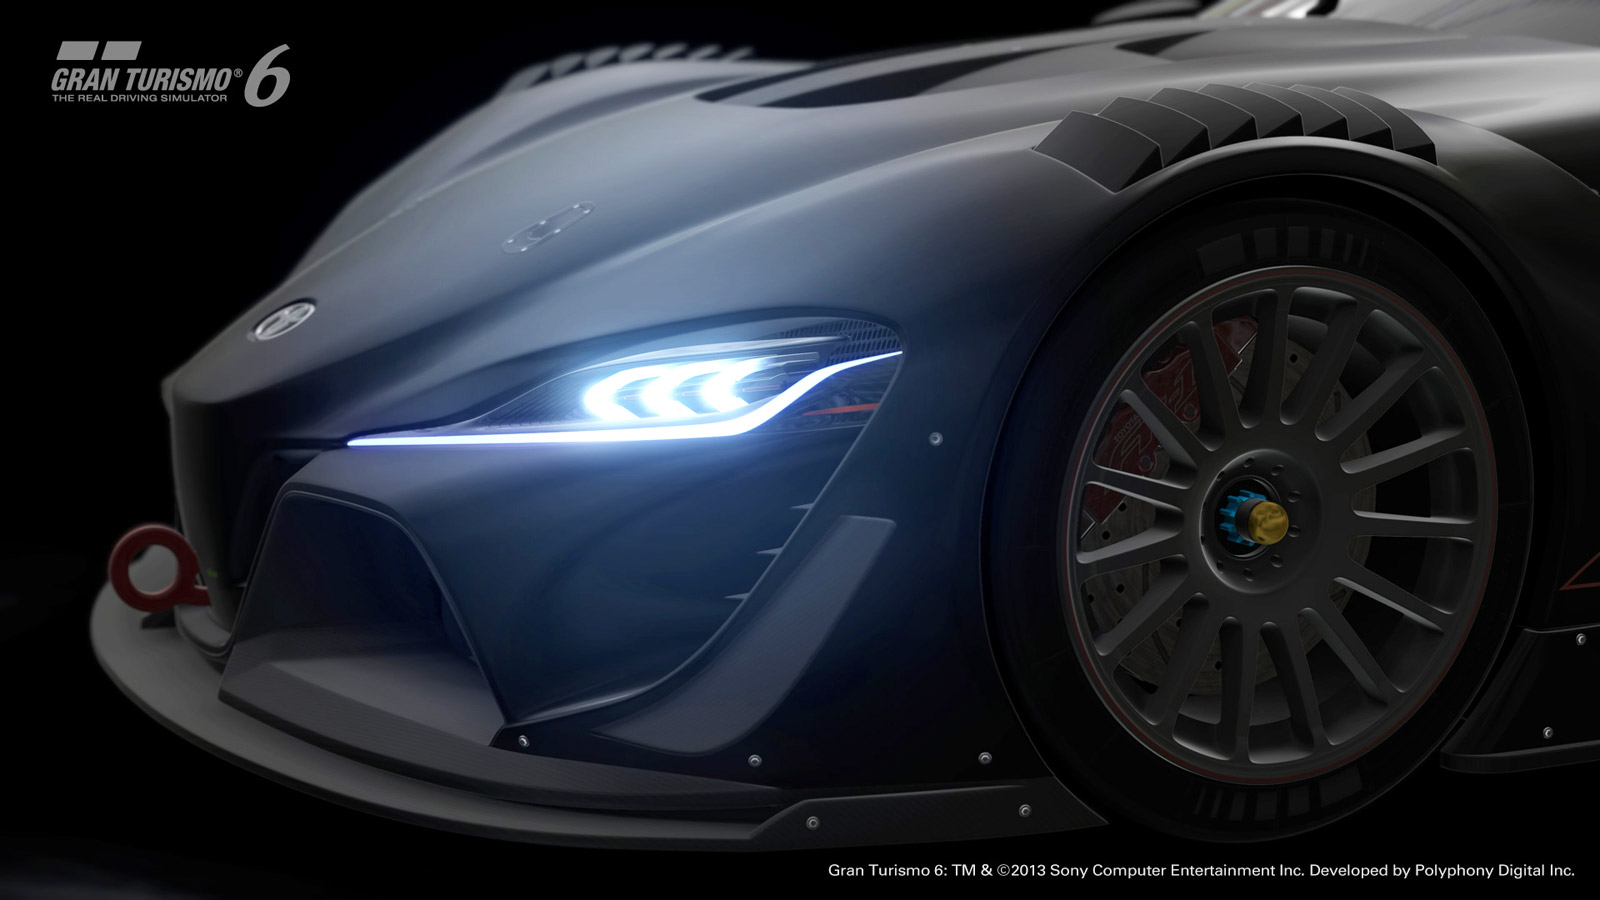 Toyota Takes Supra-Previewing FT-1 Concept To The (Virtual) Track With Gran Turismo